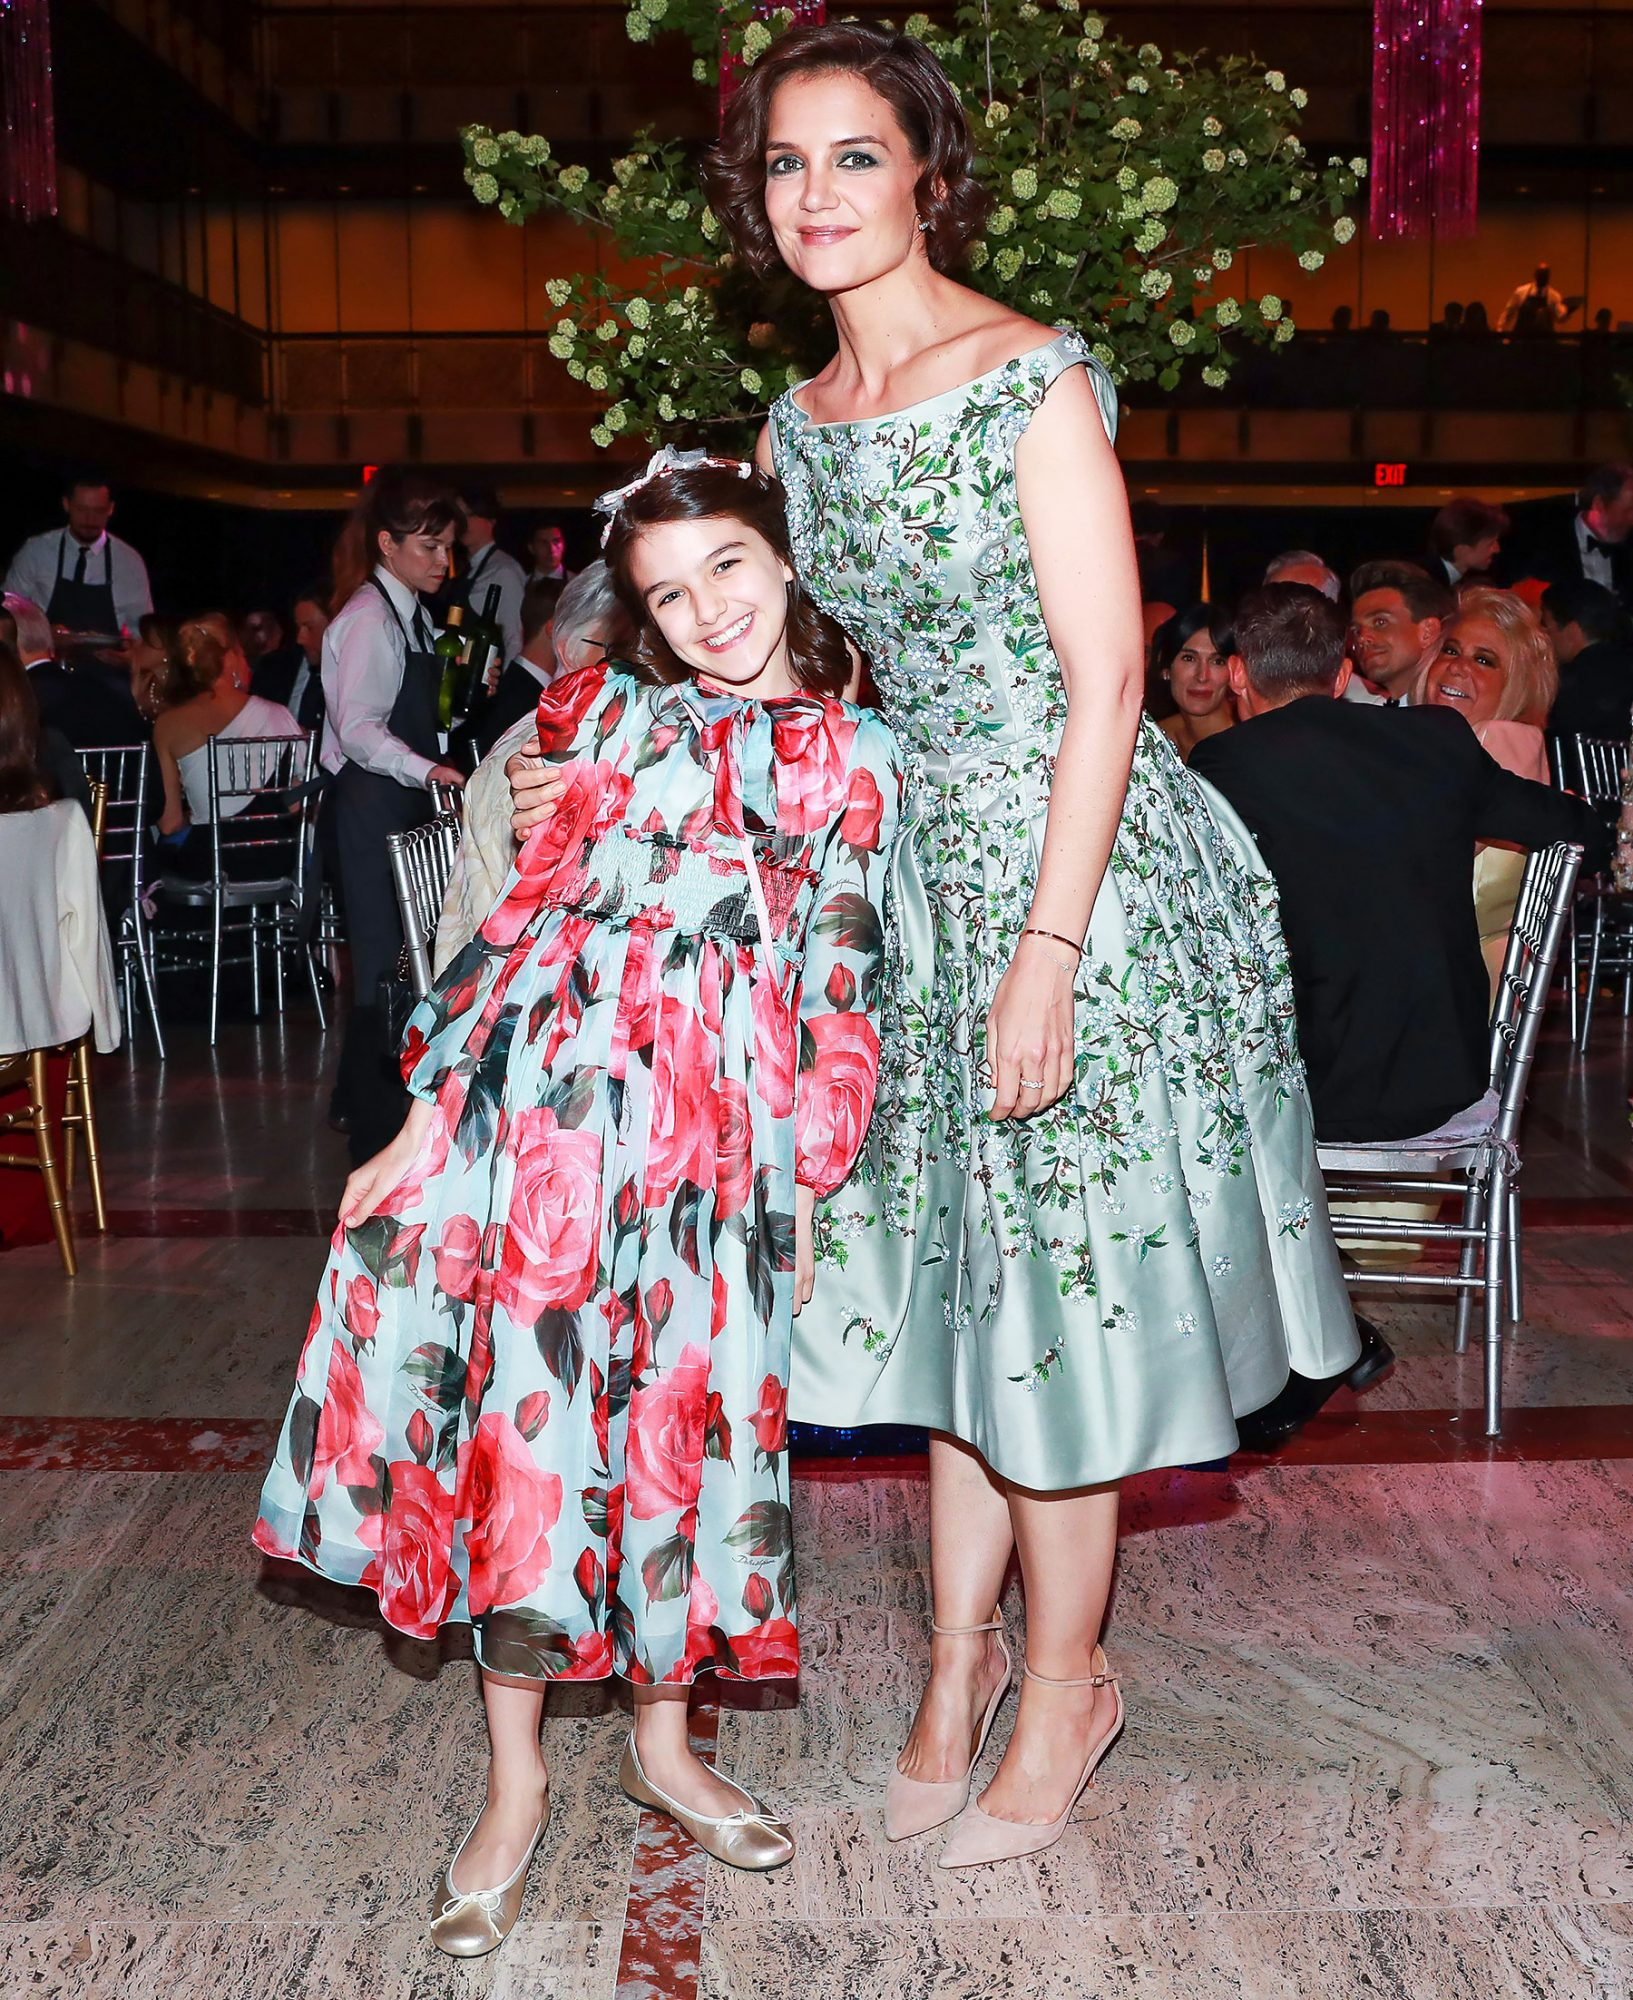 American Ballet Theater Spring Gala, Inside, New York, USA - 21 May 2018